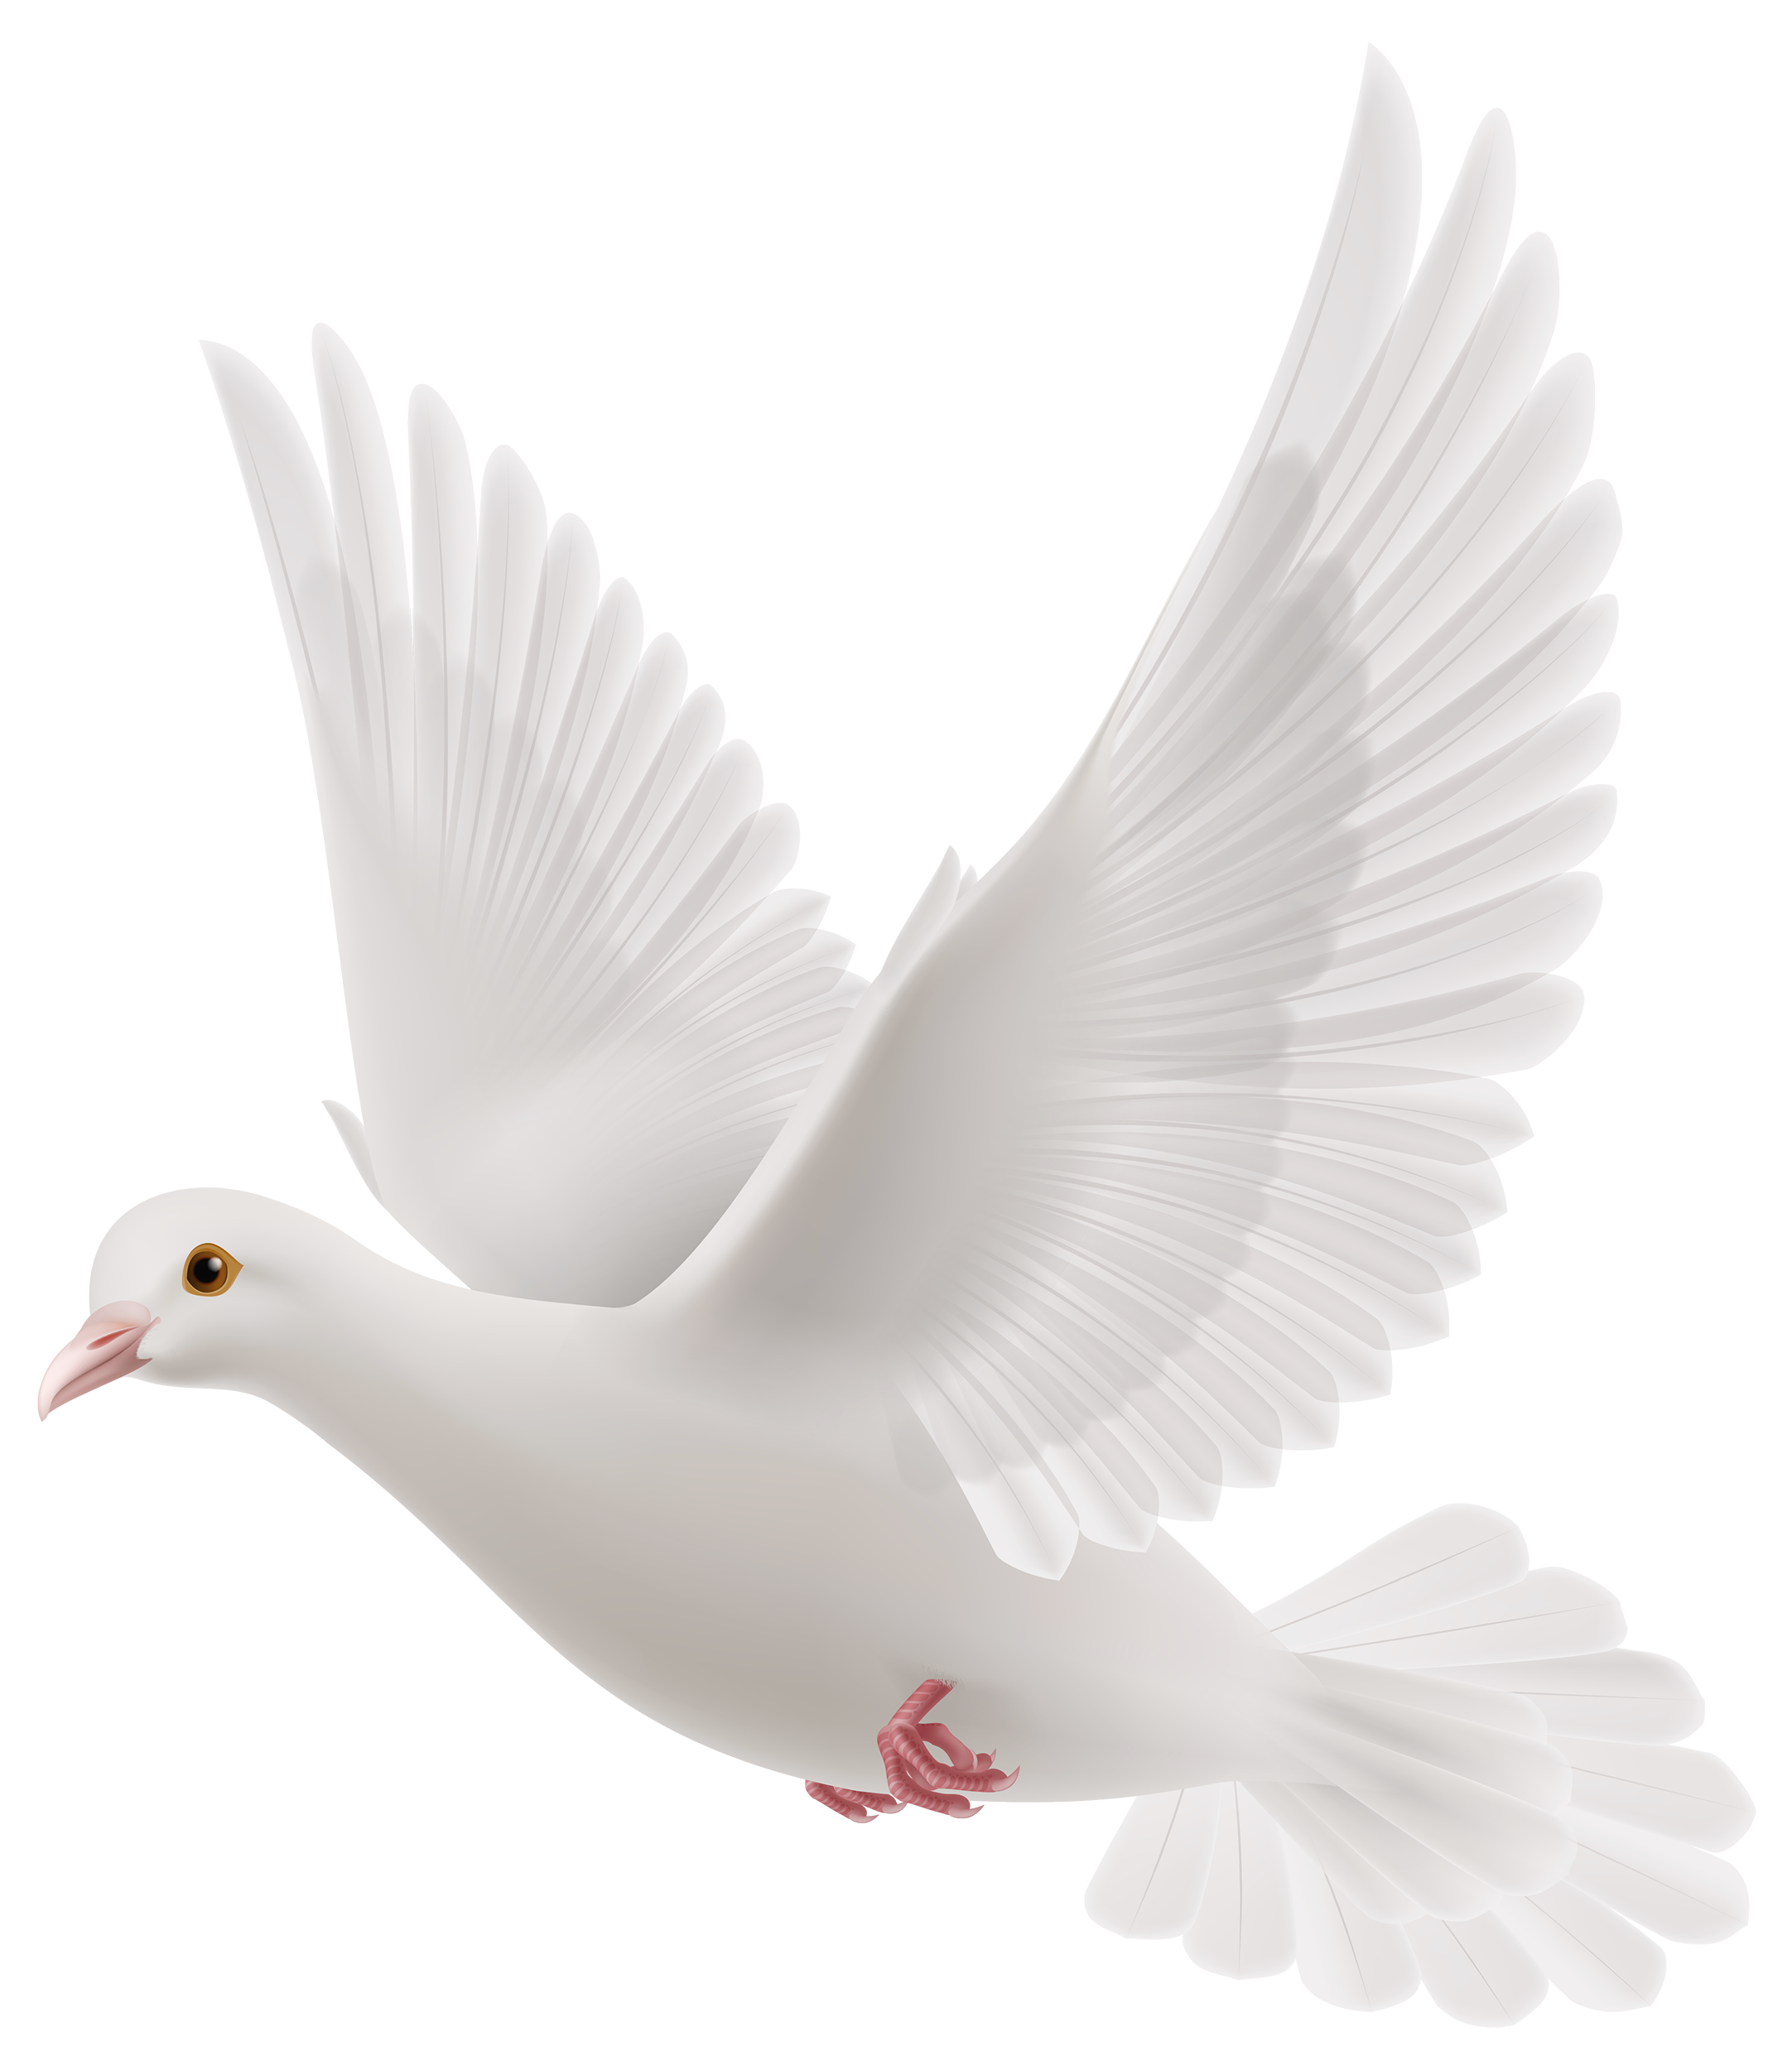 Lady clipart line art. White dove png best